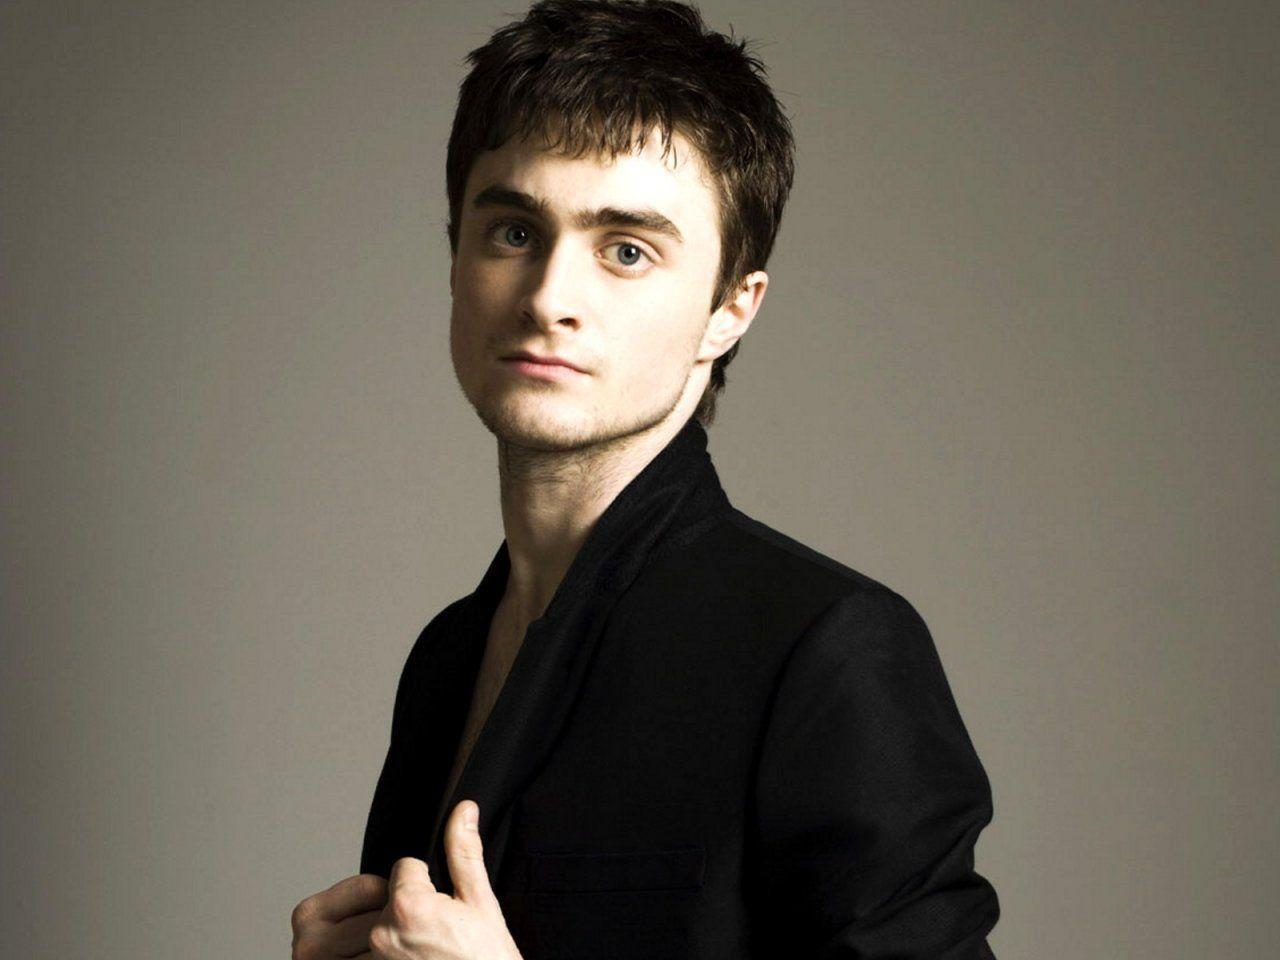 radcliffe hd wallpapers num2 - photo #27